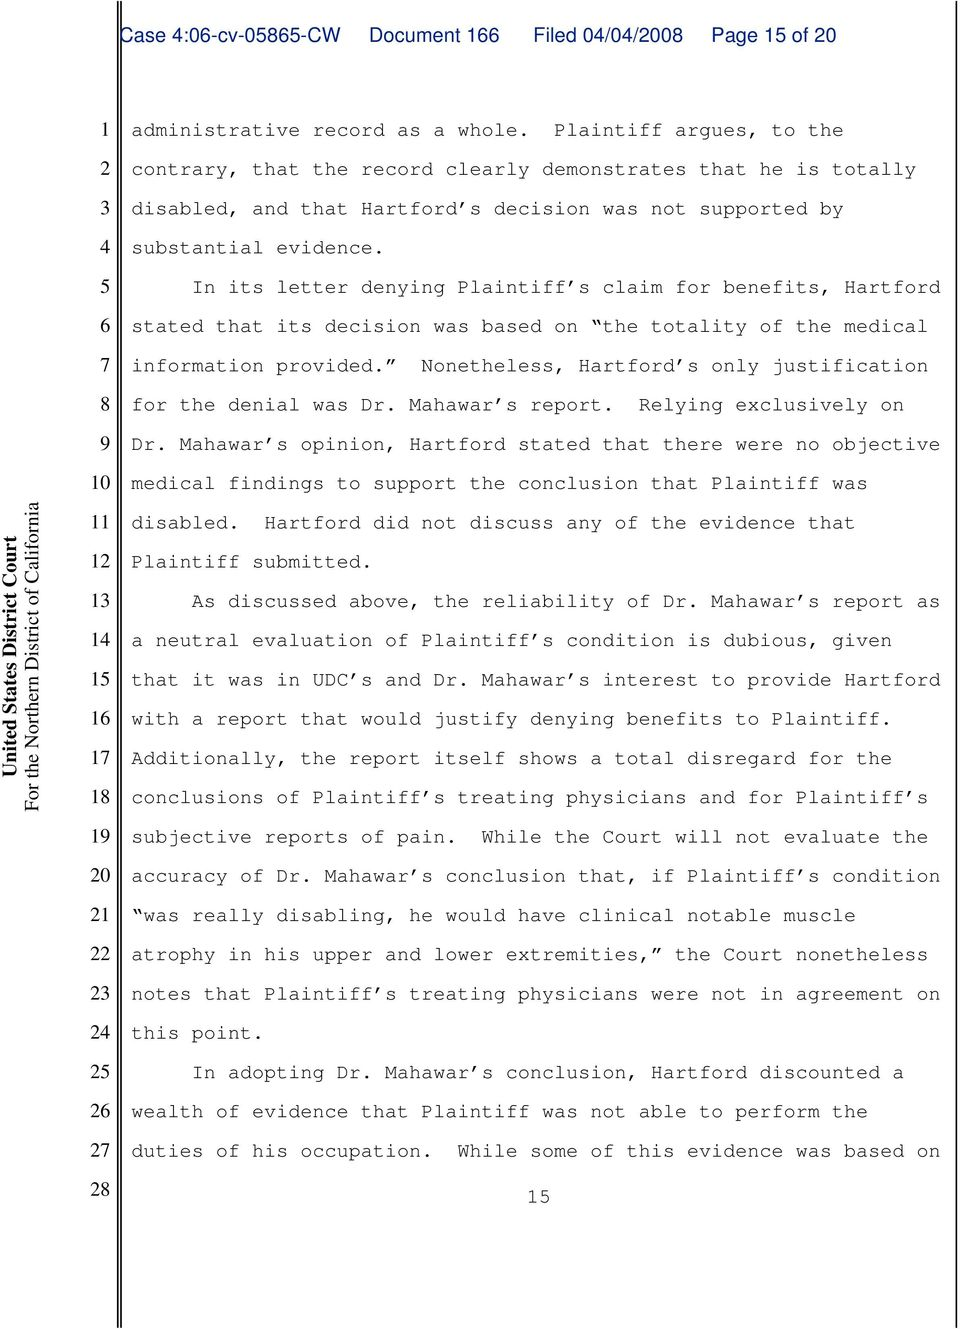 In its letter denying Plaintiff s claim for benefits, Hartford stated that its decision was based on the totality of the medical information provided.